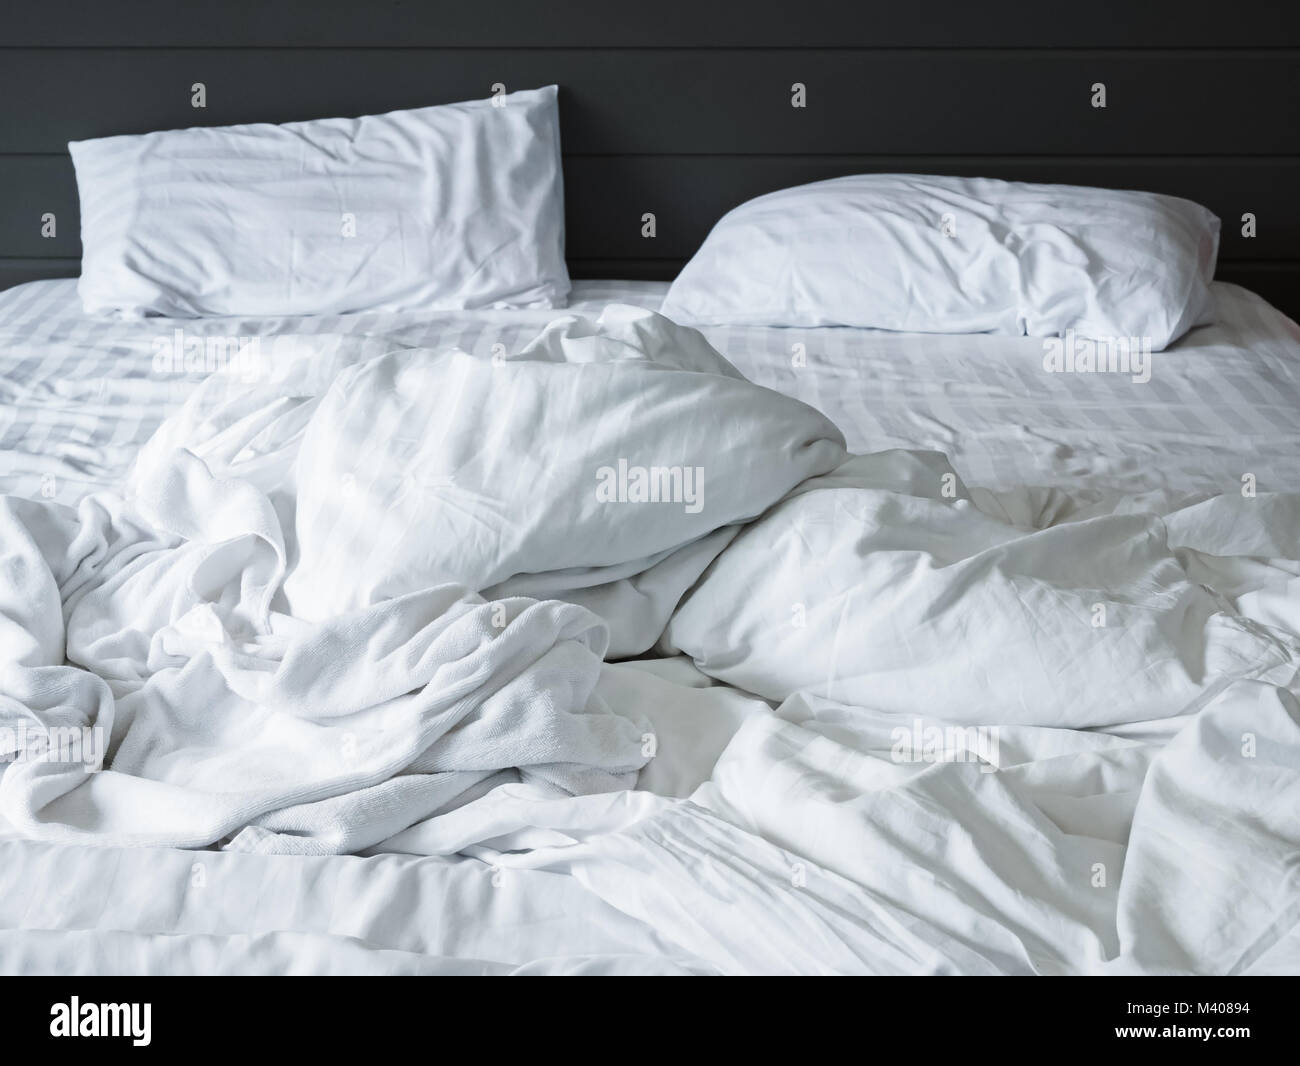 messy white bedding sheets and pillow in bedroom background ,Unmade messy bed after comfort sleep concept - Stock Image